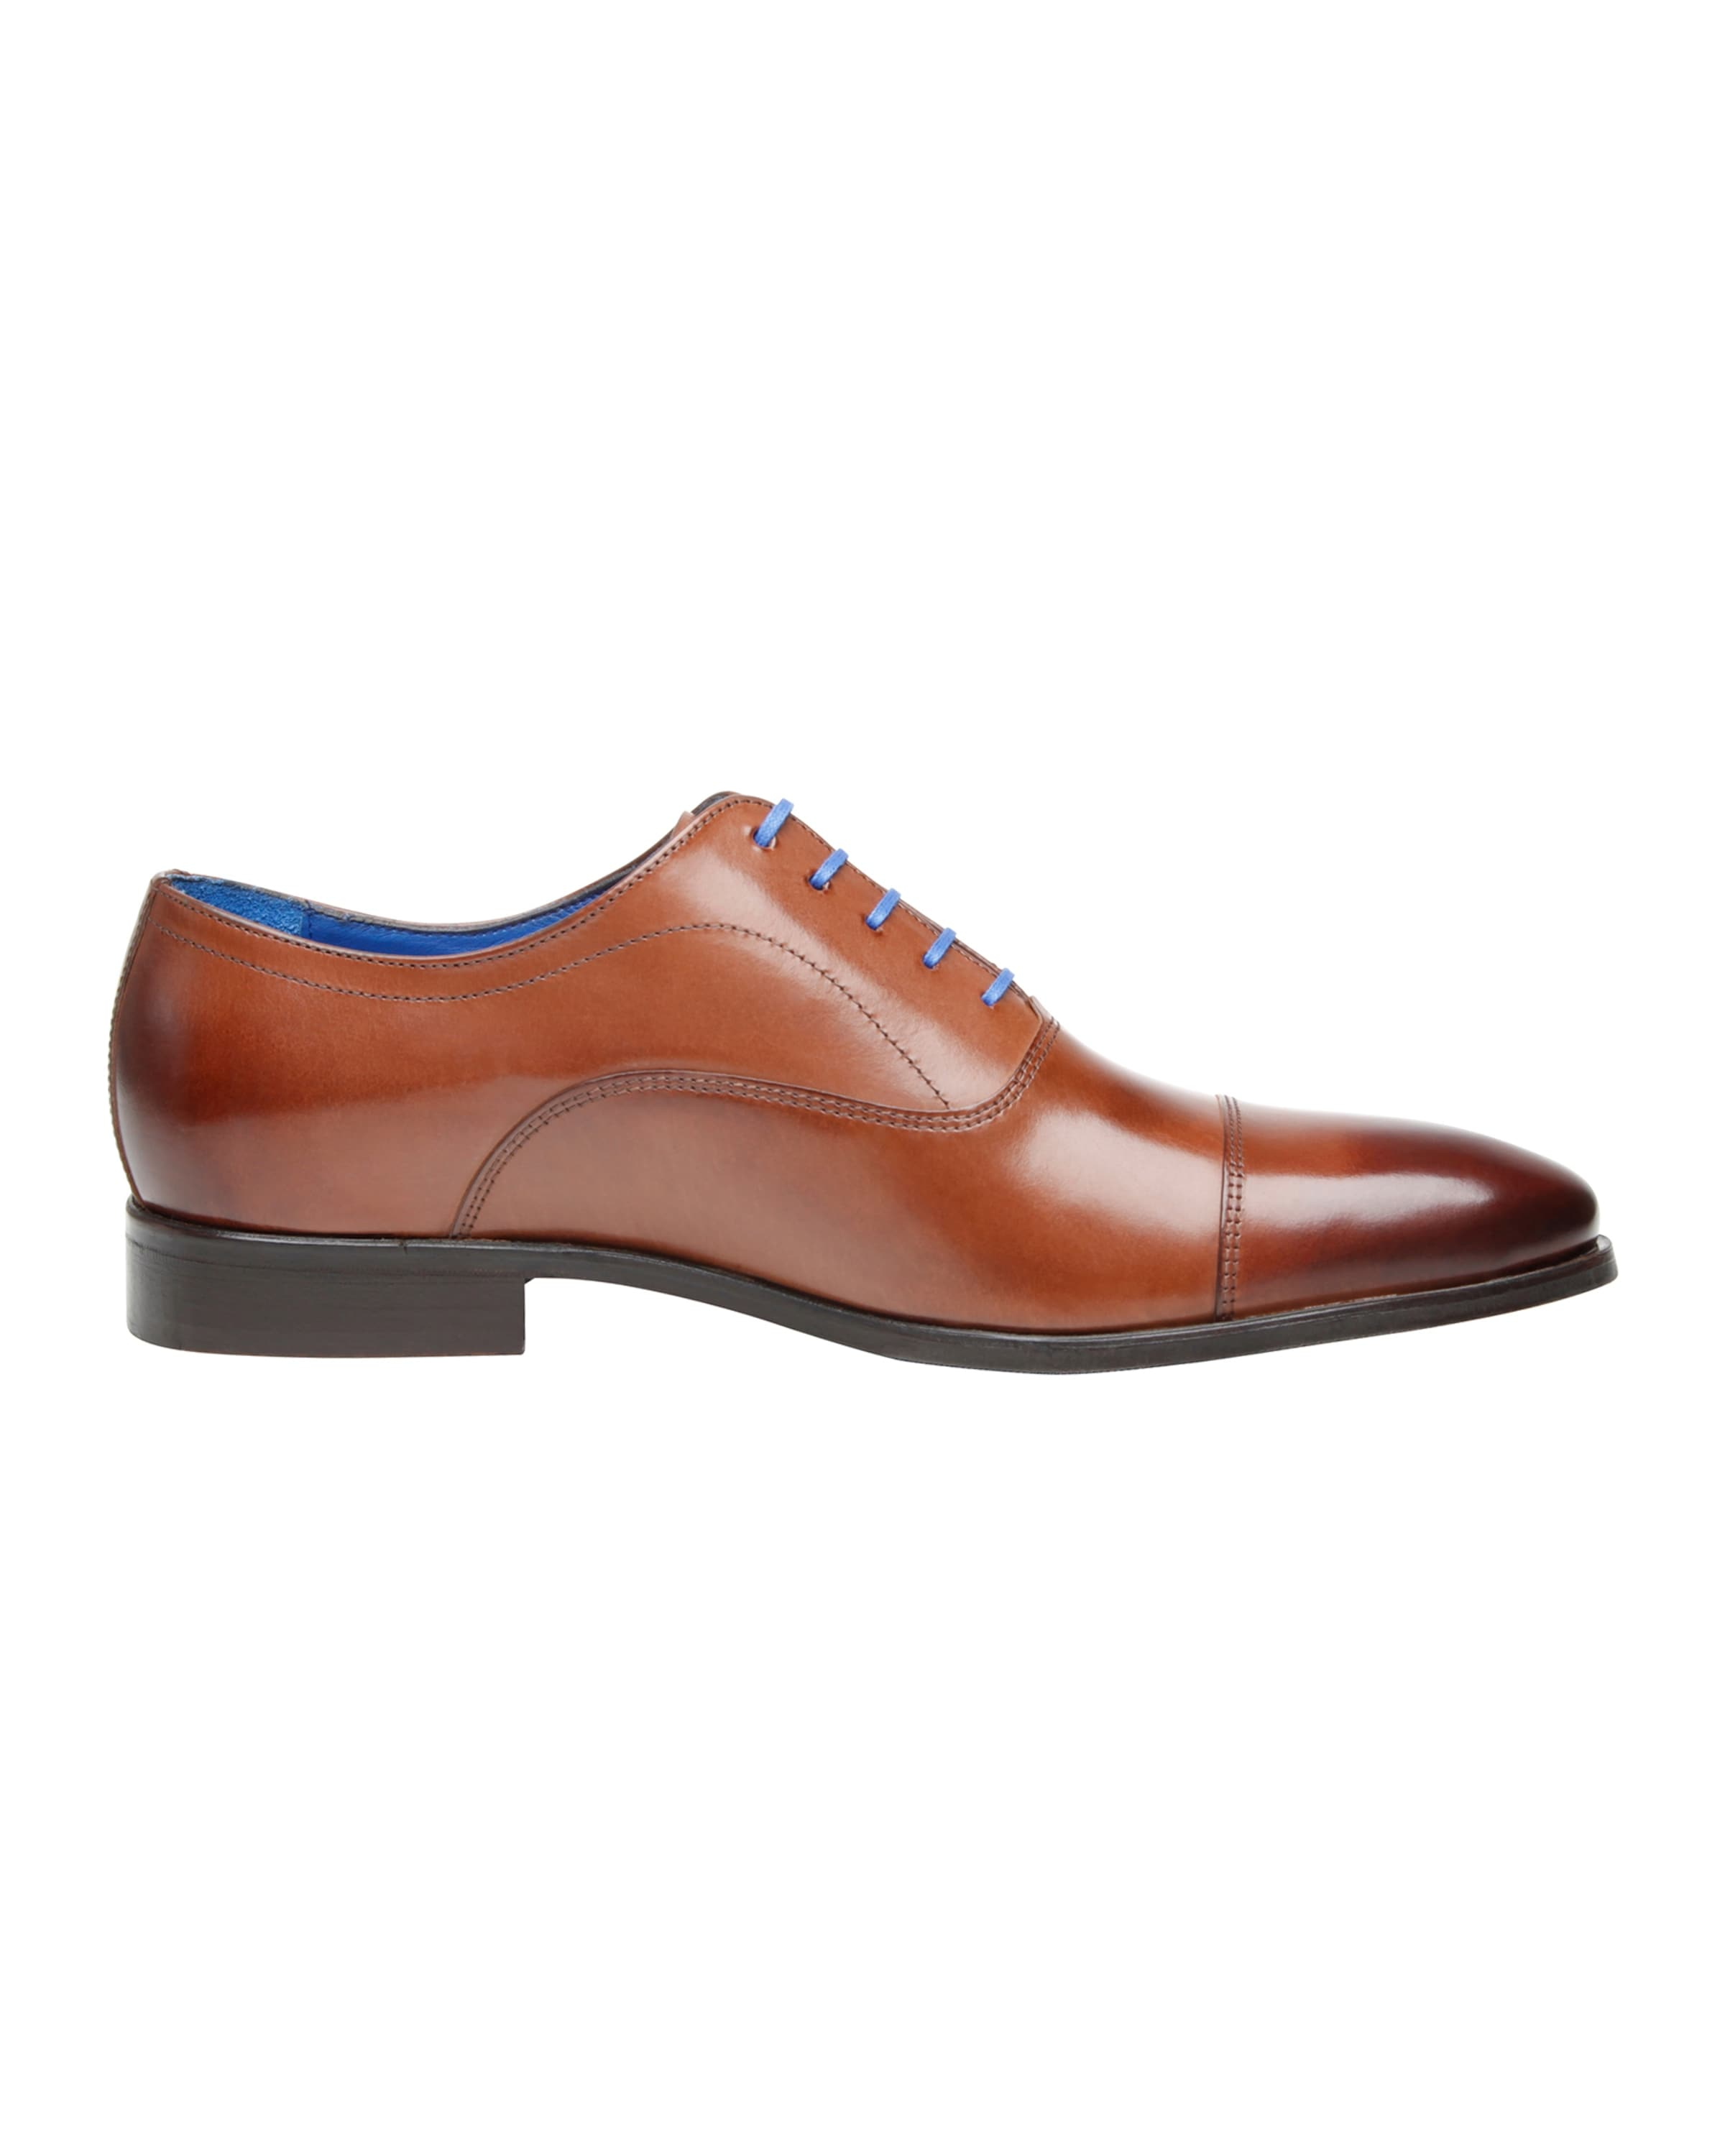 'no5602 Cognac Businessschuhe Bl' Shoepassion In xrBWdeQCoE